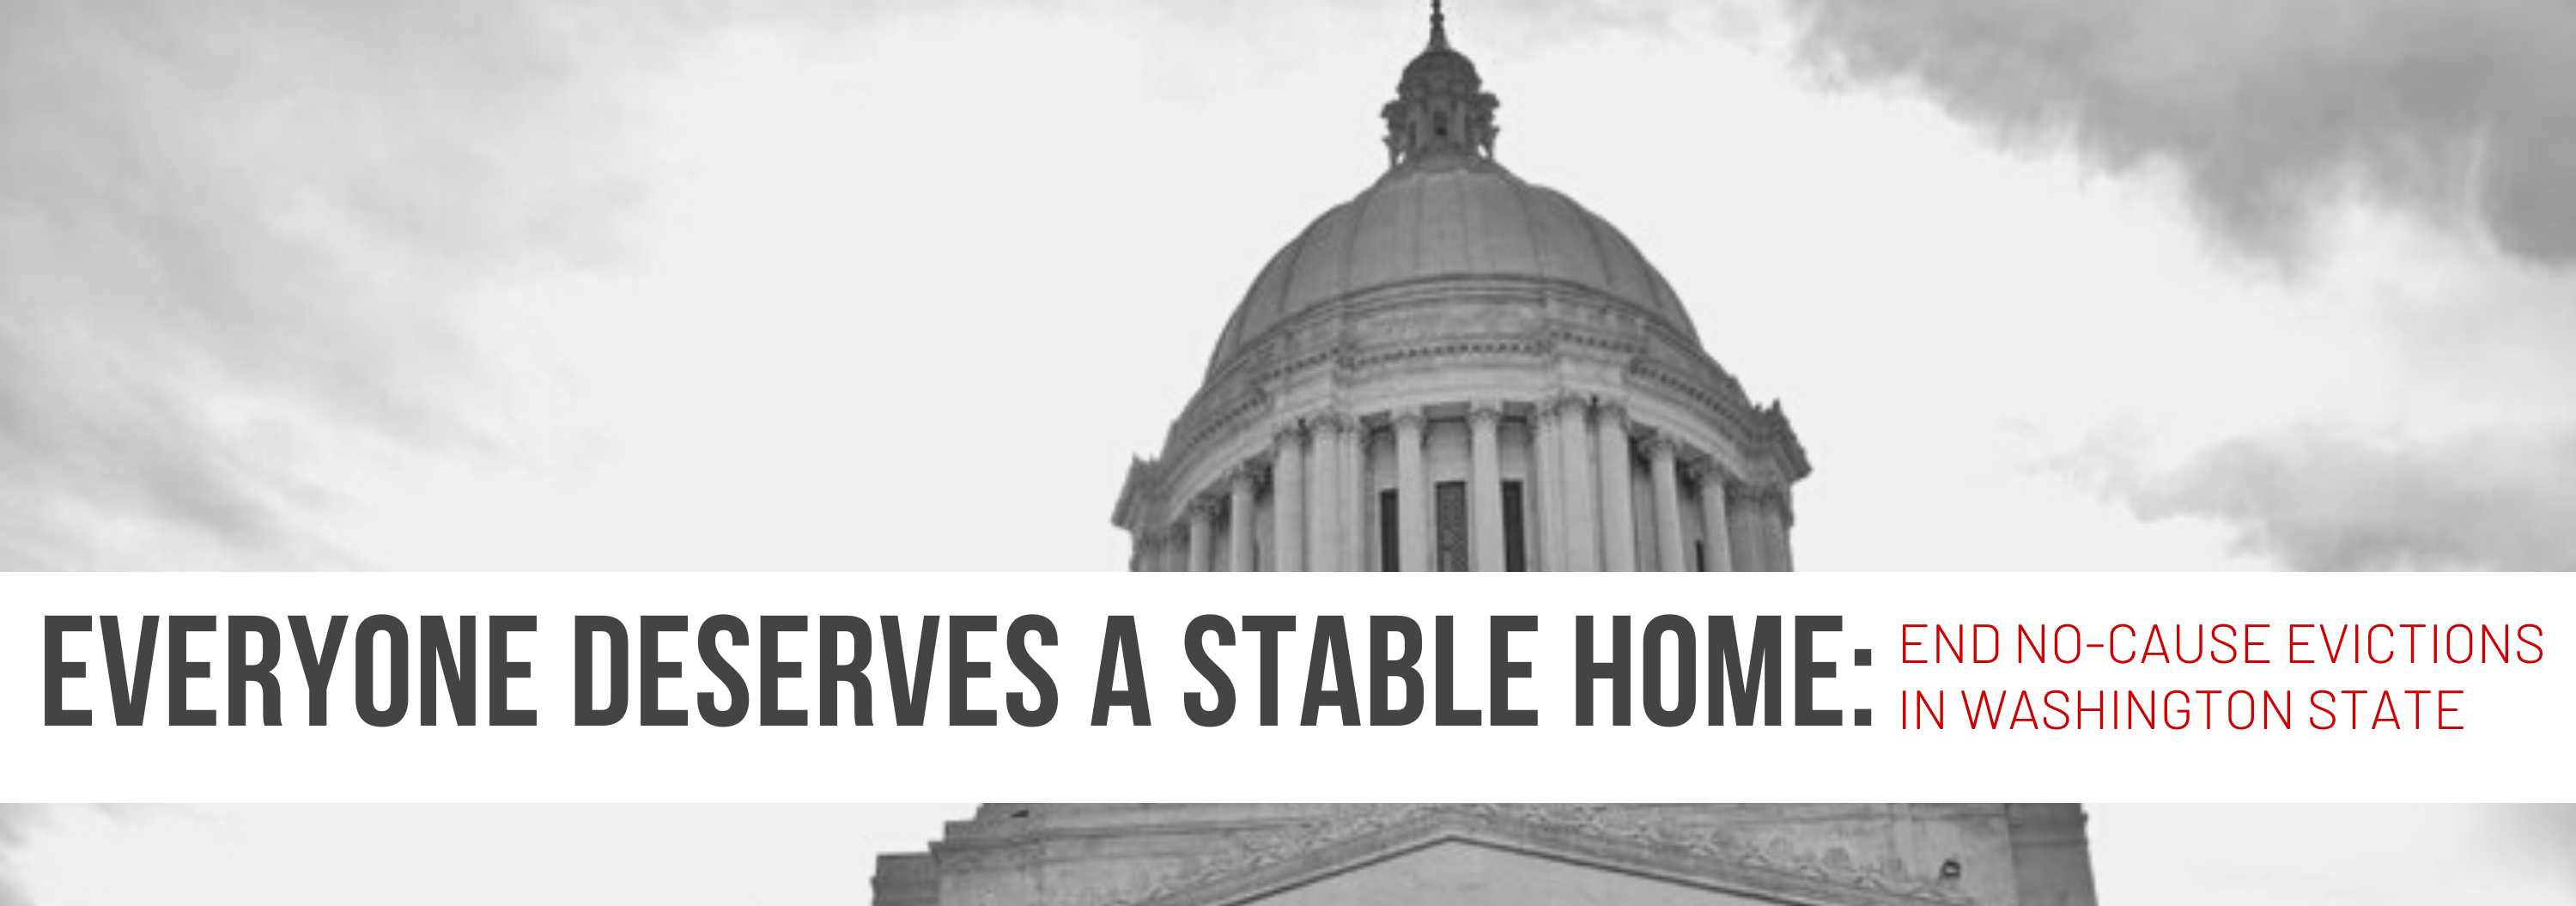 Everyone deserves a stable home